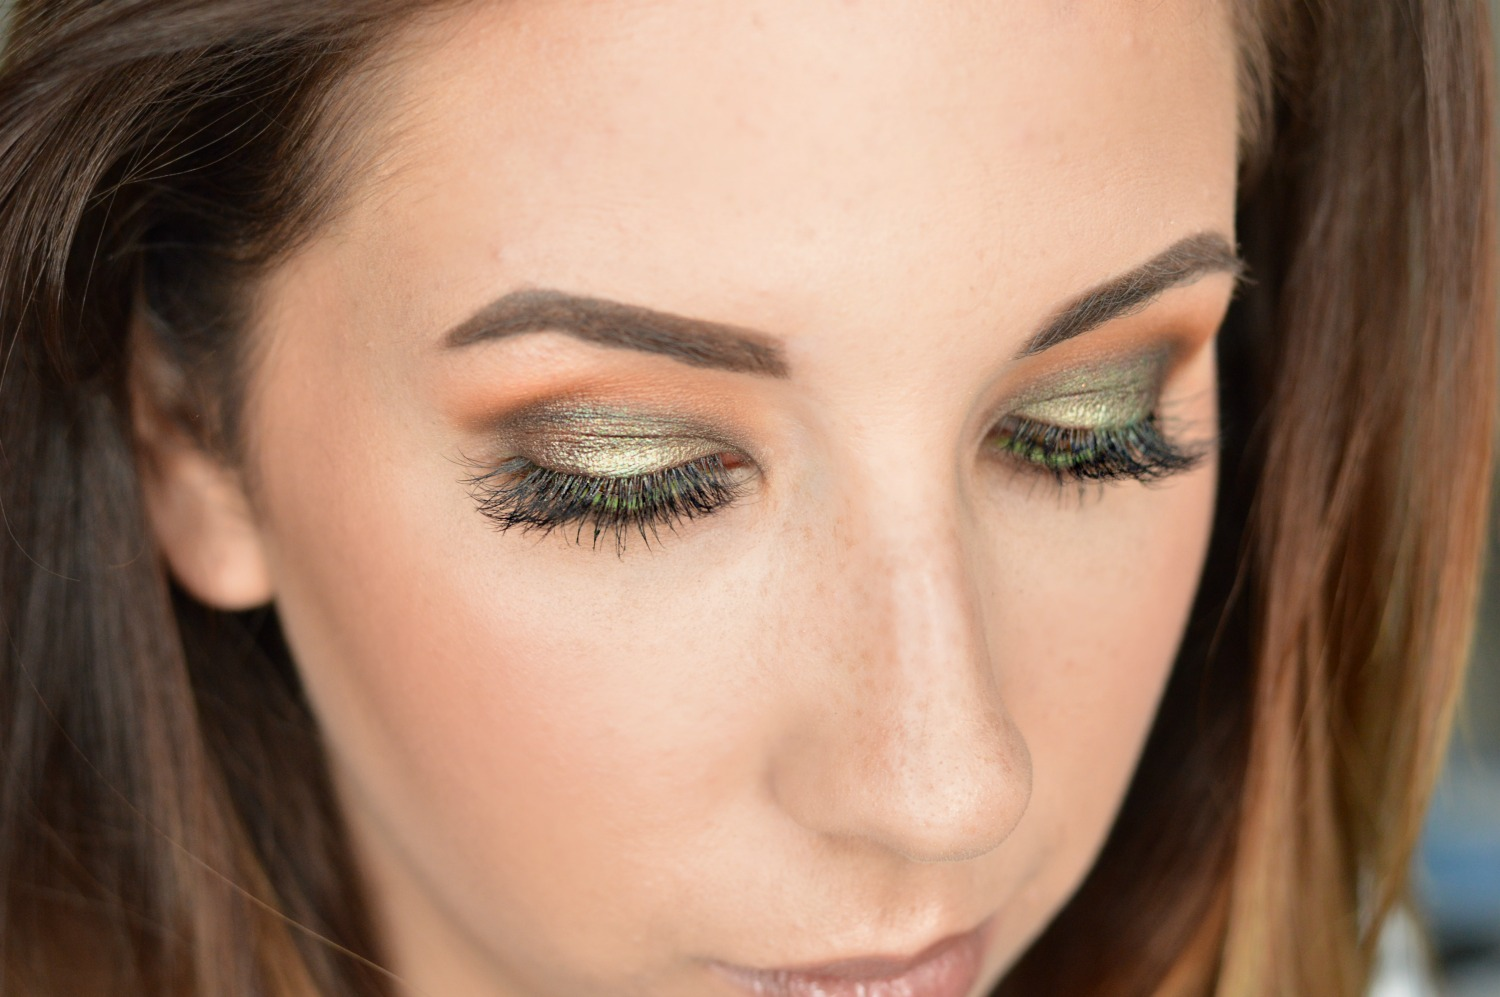 Gold and Green smokey eye created with the Morphe x Kathleen Lights Palette // Hey There, Chelsie